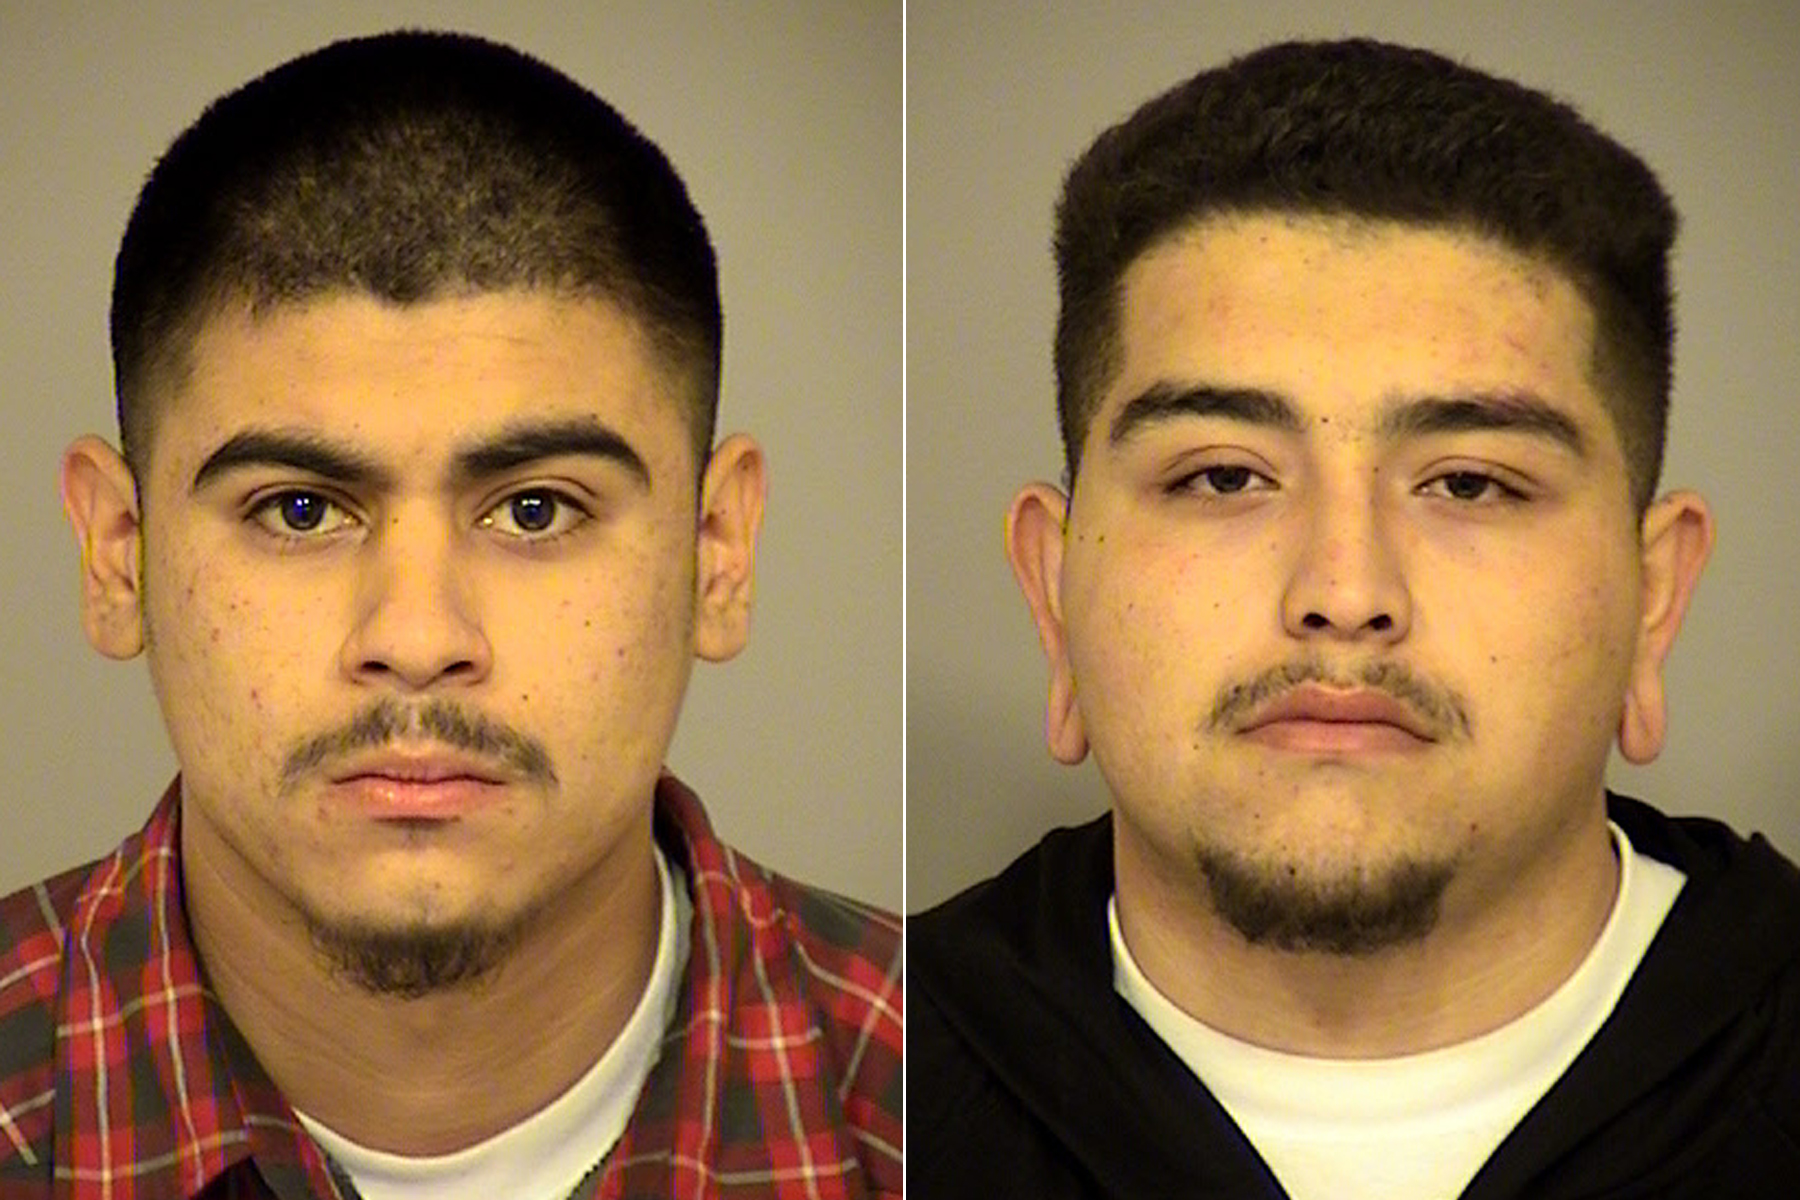 Jorge Nunez (left) and Jacob Oseguera (right) arrested on Dec. 20, 2019. (Credit: Ventura County Sheriff's Office)